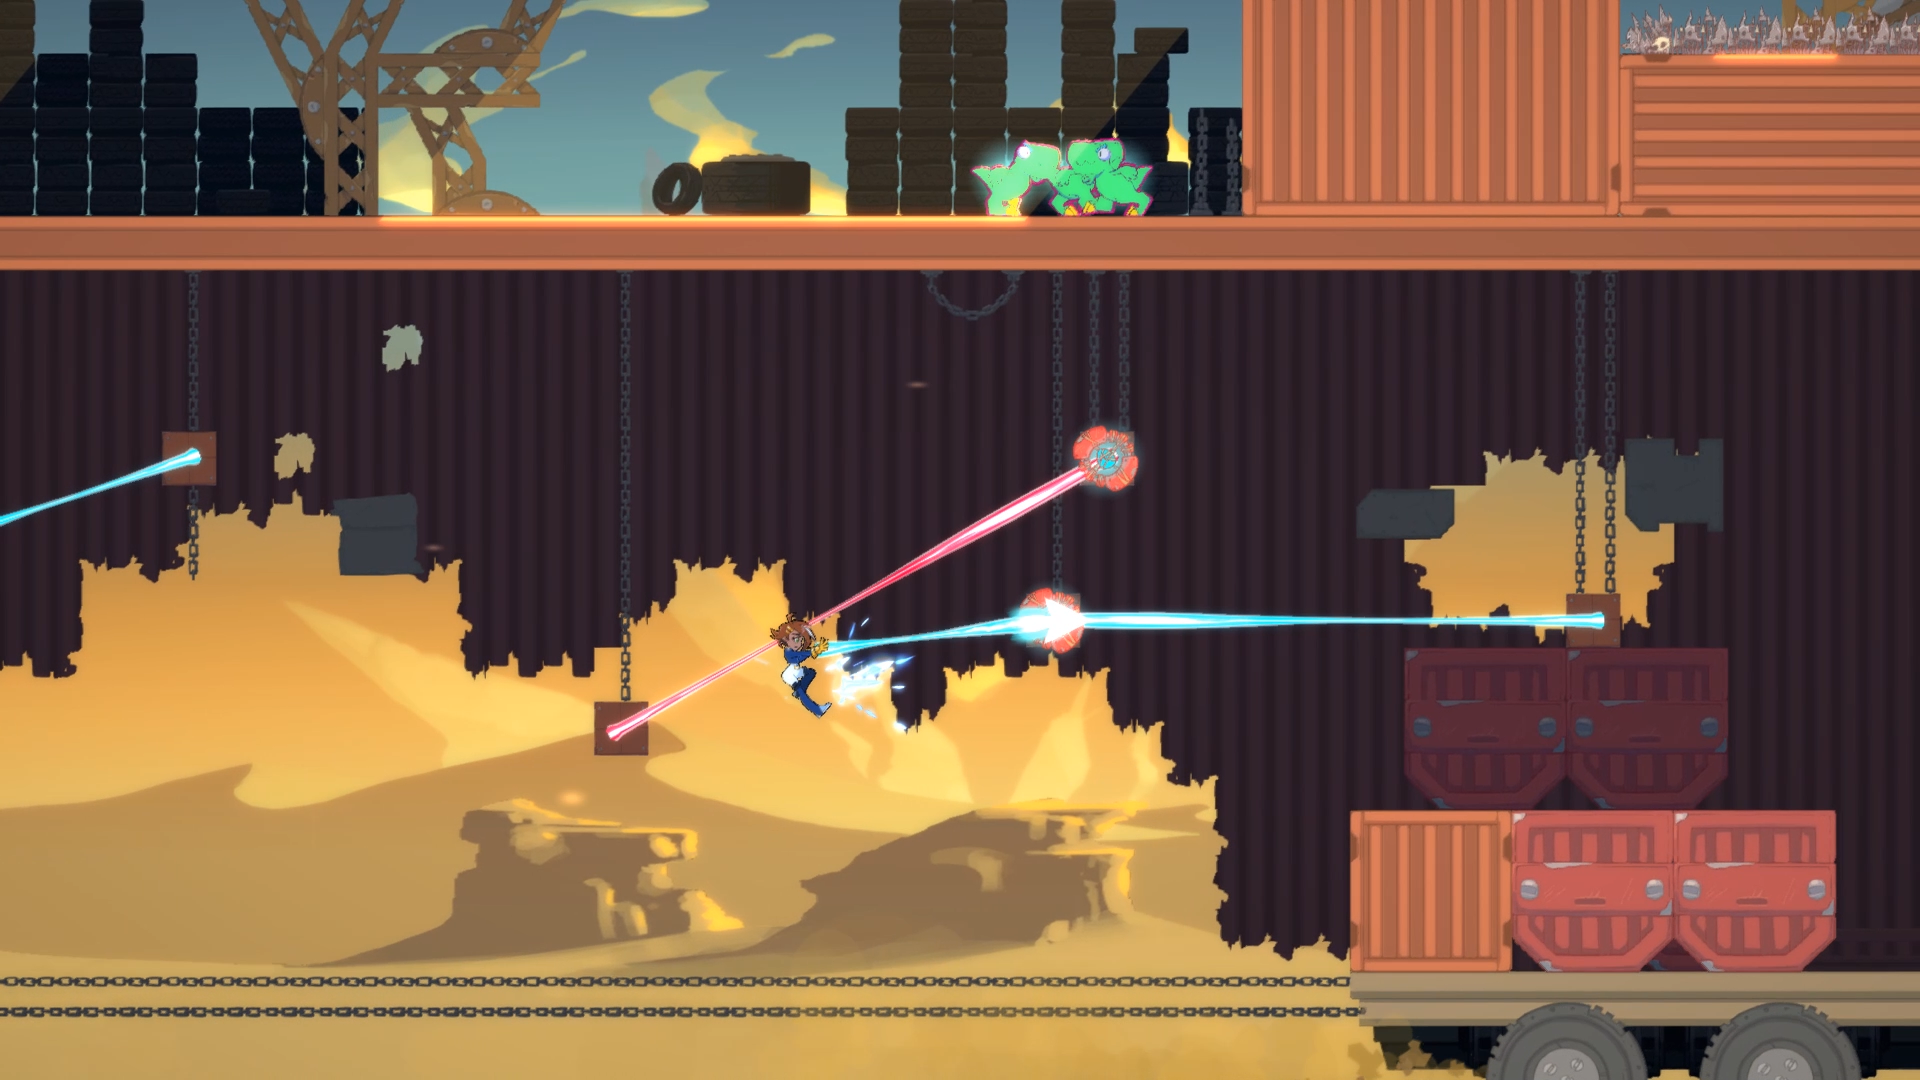 Runbow studio 13AM Games announces platformer Double Cross for Switch, PC